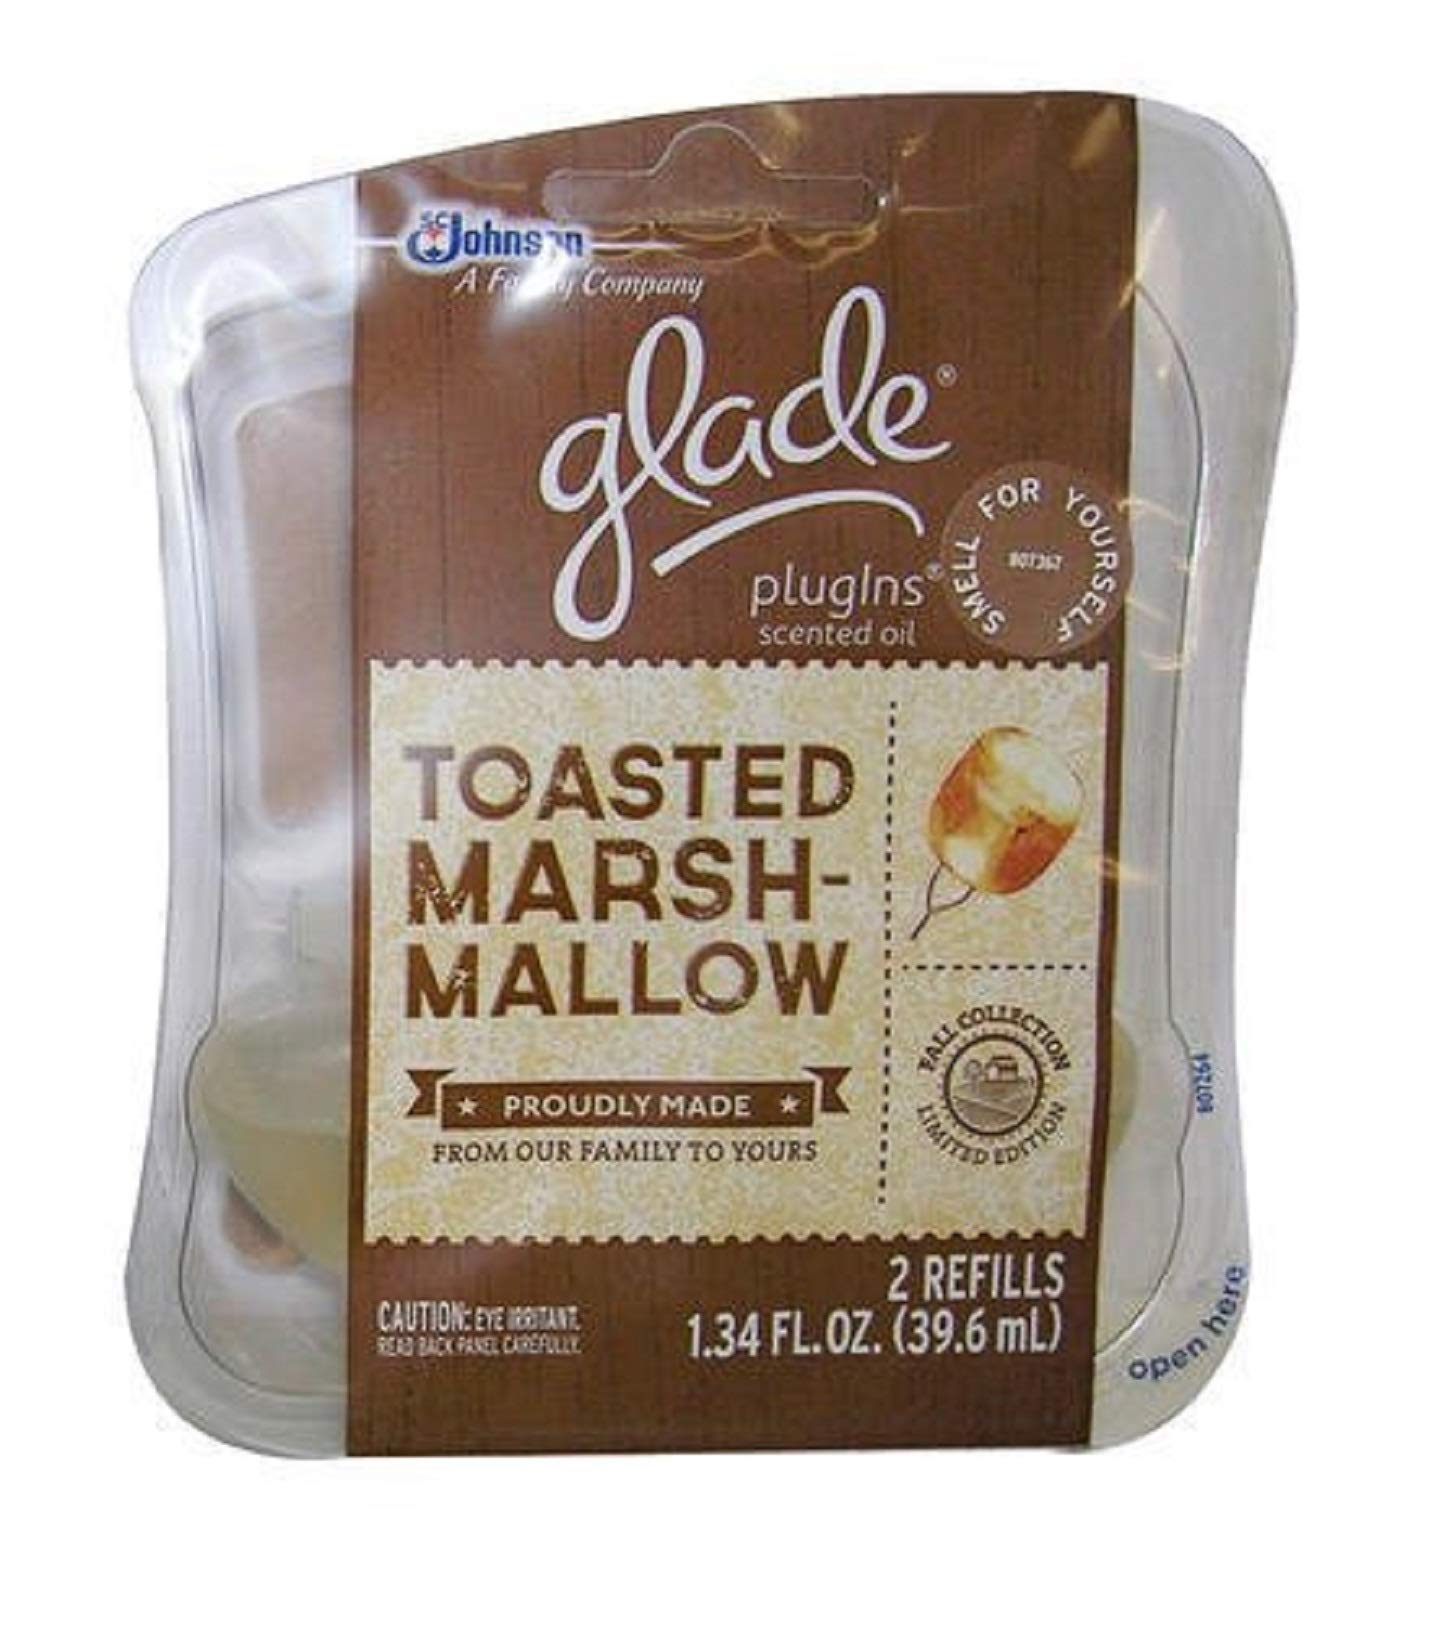 Glade Plug-in Scented Oil Refill 2 Ct Each - Toasted Marshmallow Holiday Edition (Pack of 10)